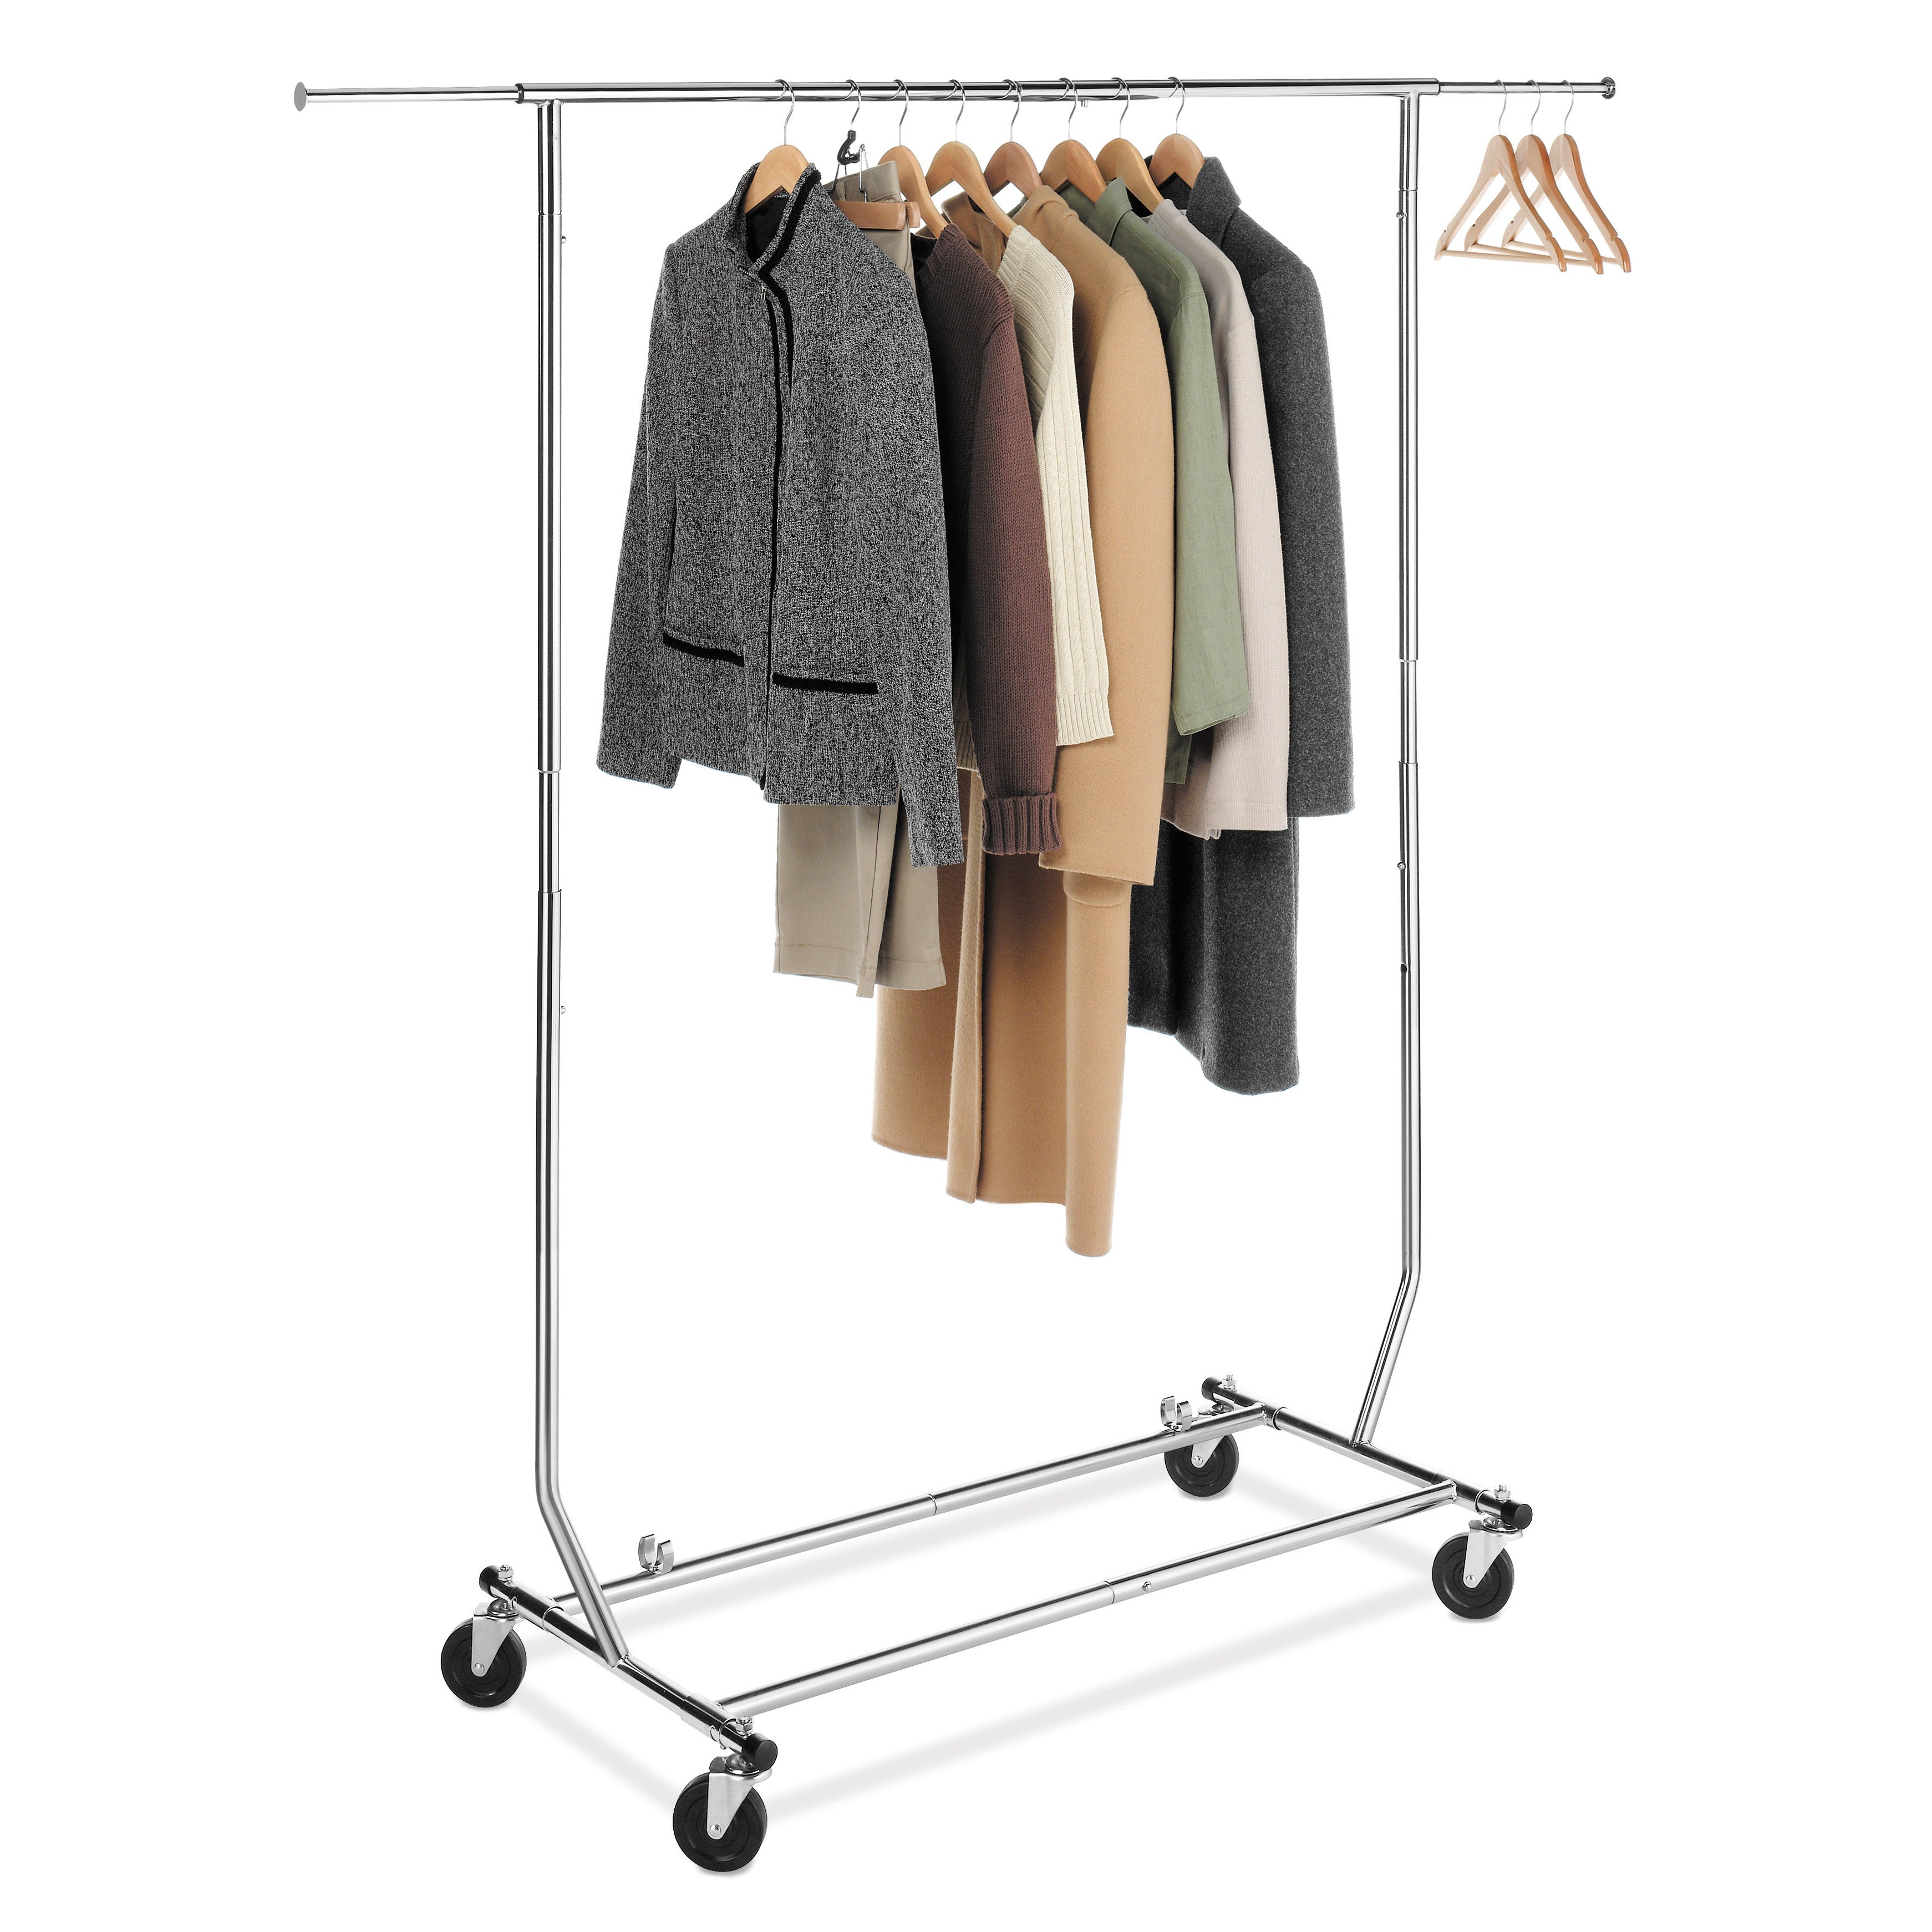 Shop whitmor 6339 1938 chrome steel commercial rolling garment rack free shipping today overstock com 7565103